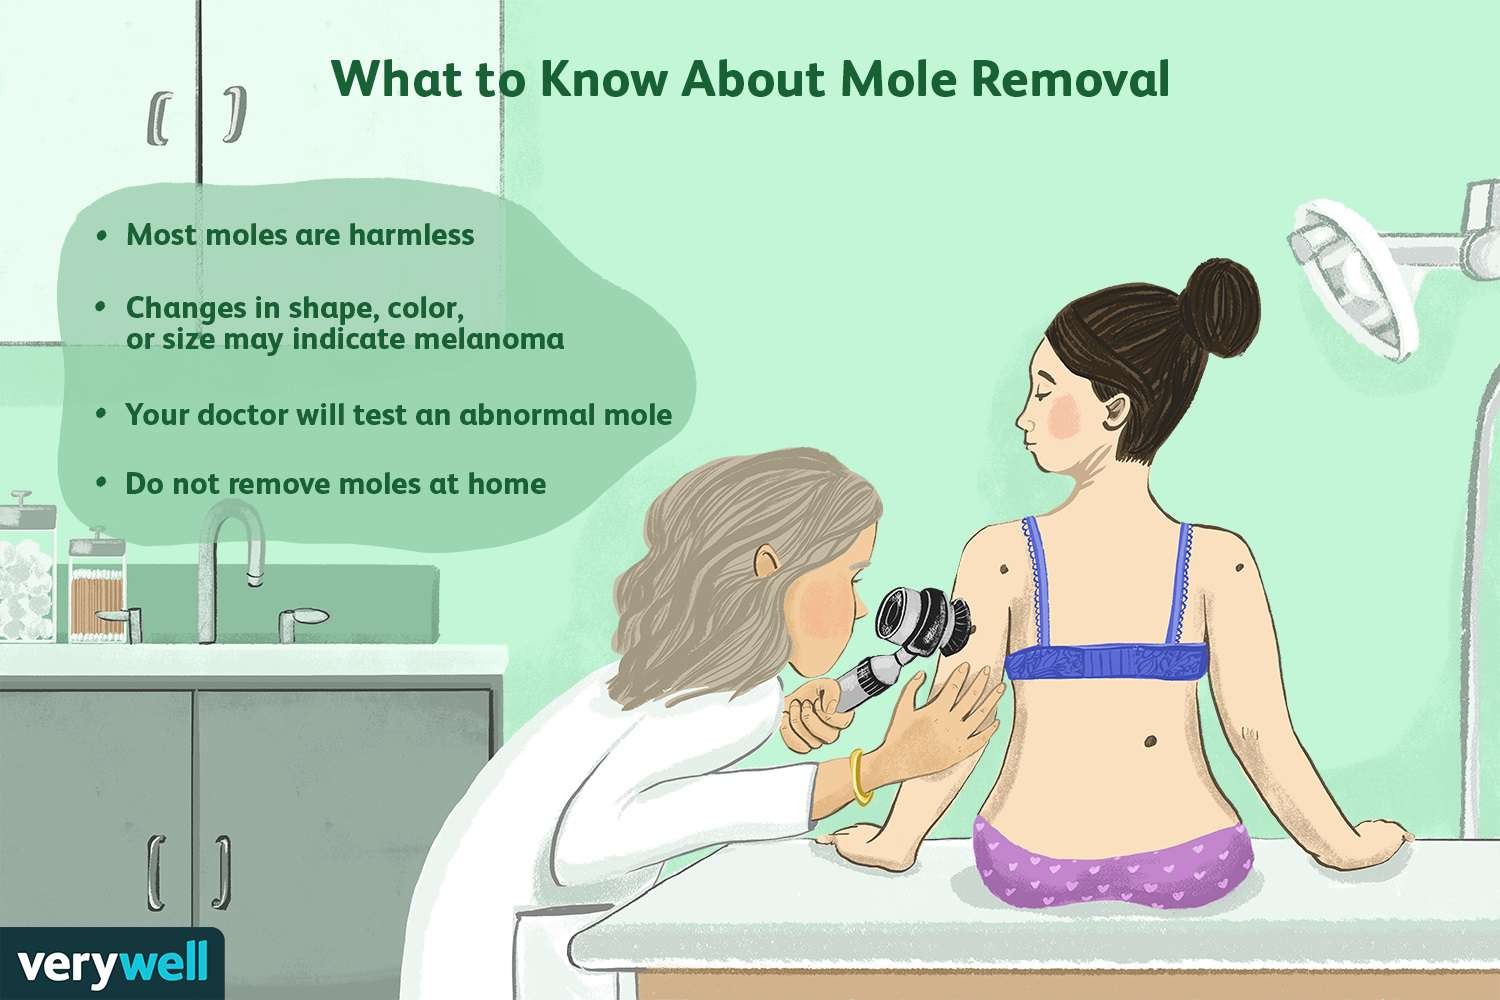 What to Know About Mole Removal